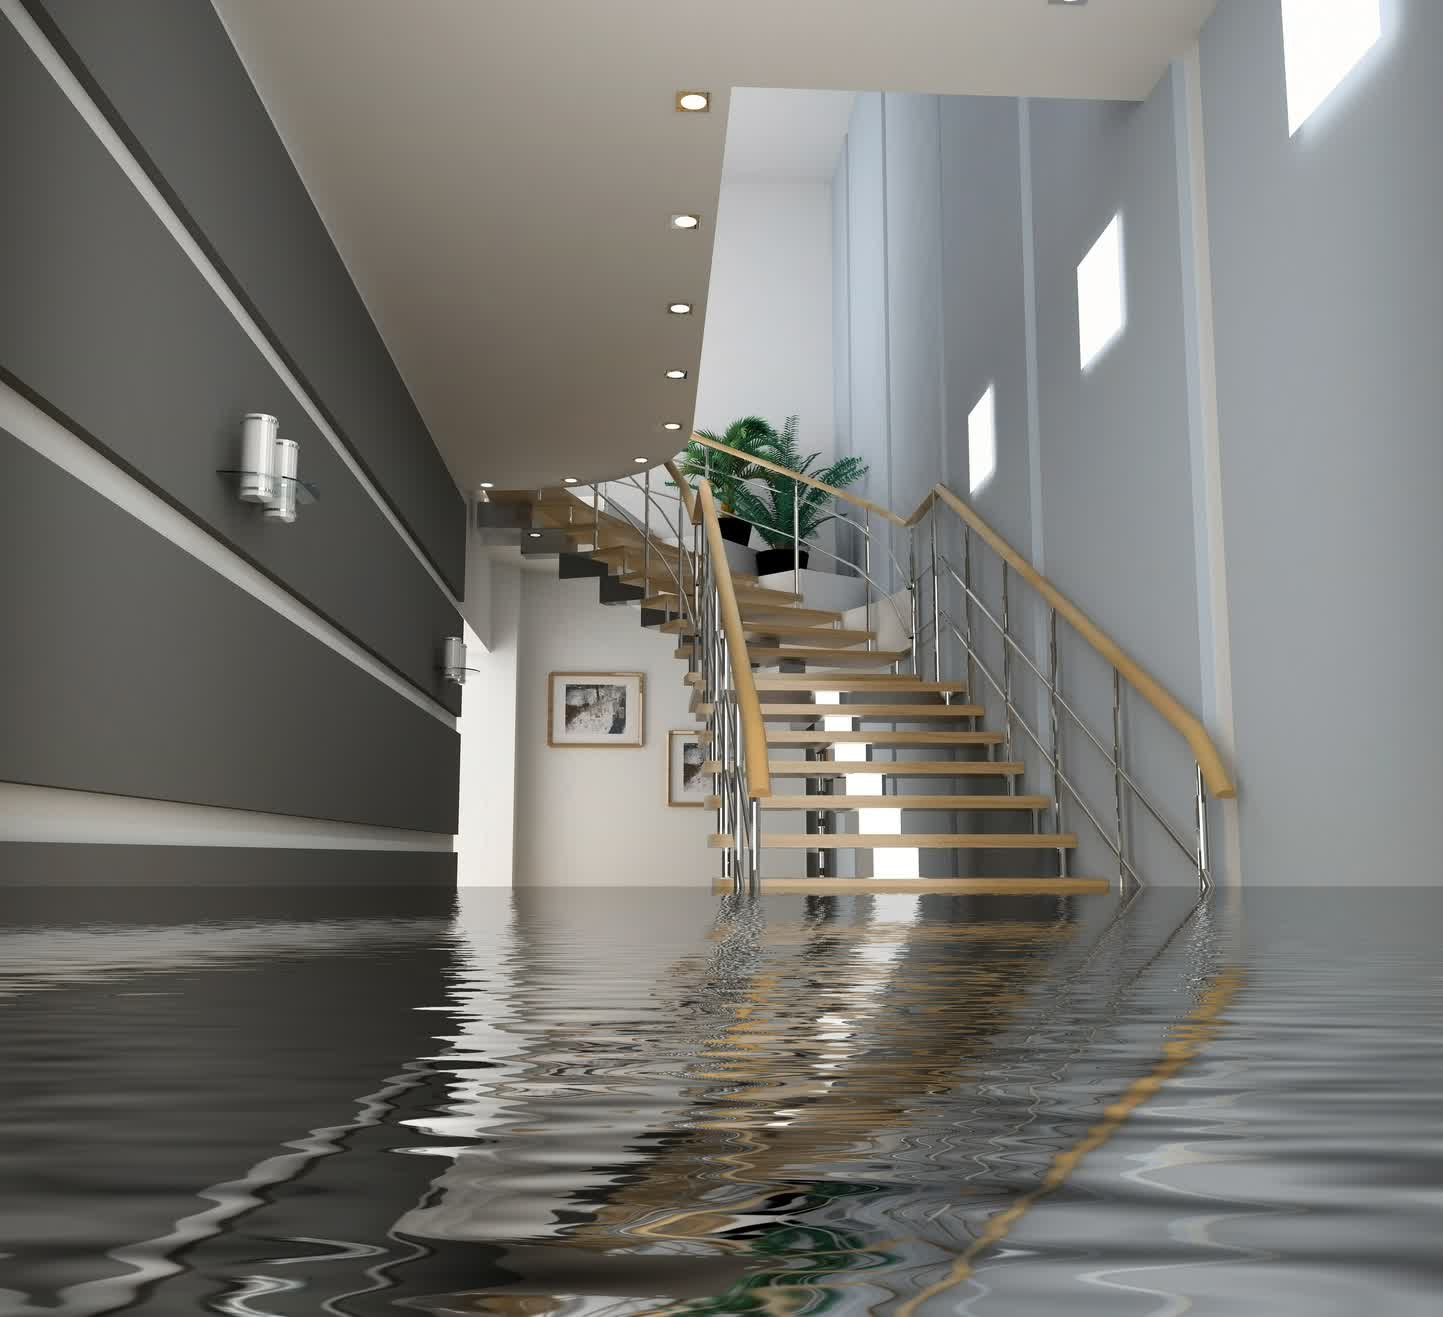 The Right Ways To Clean Flooding Basement Problem